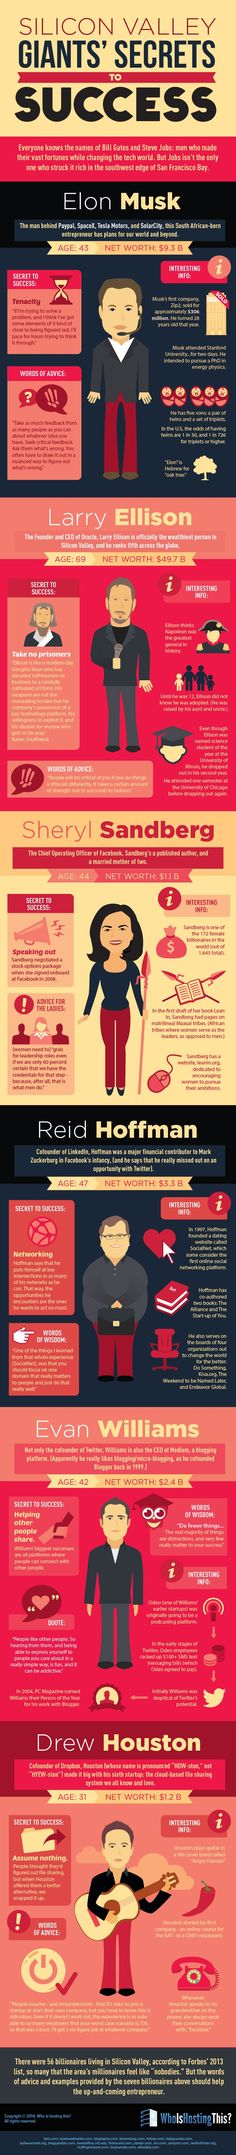 Silicon Valley Giant's Secrets To Success - #infographic